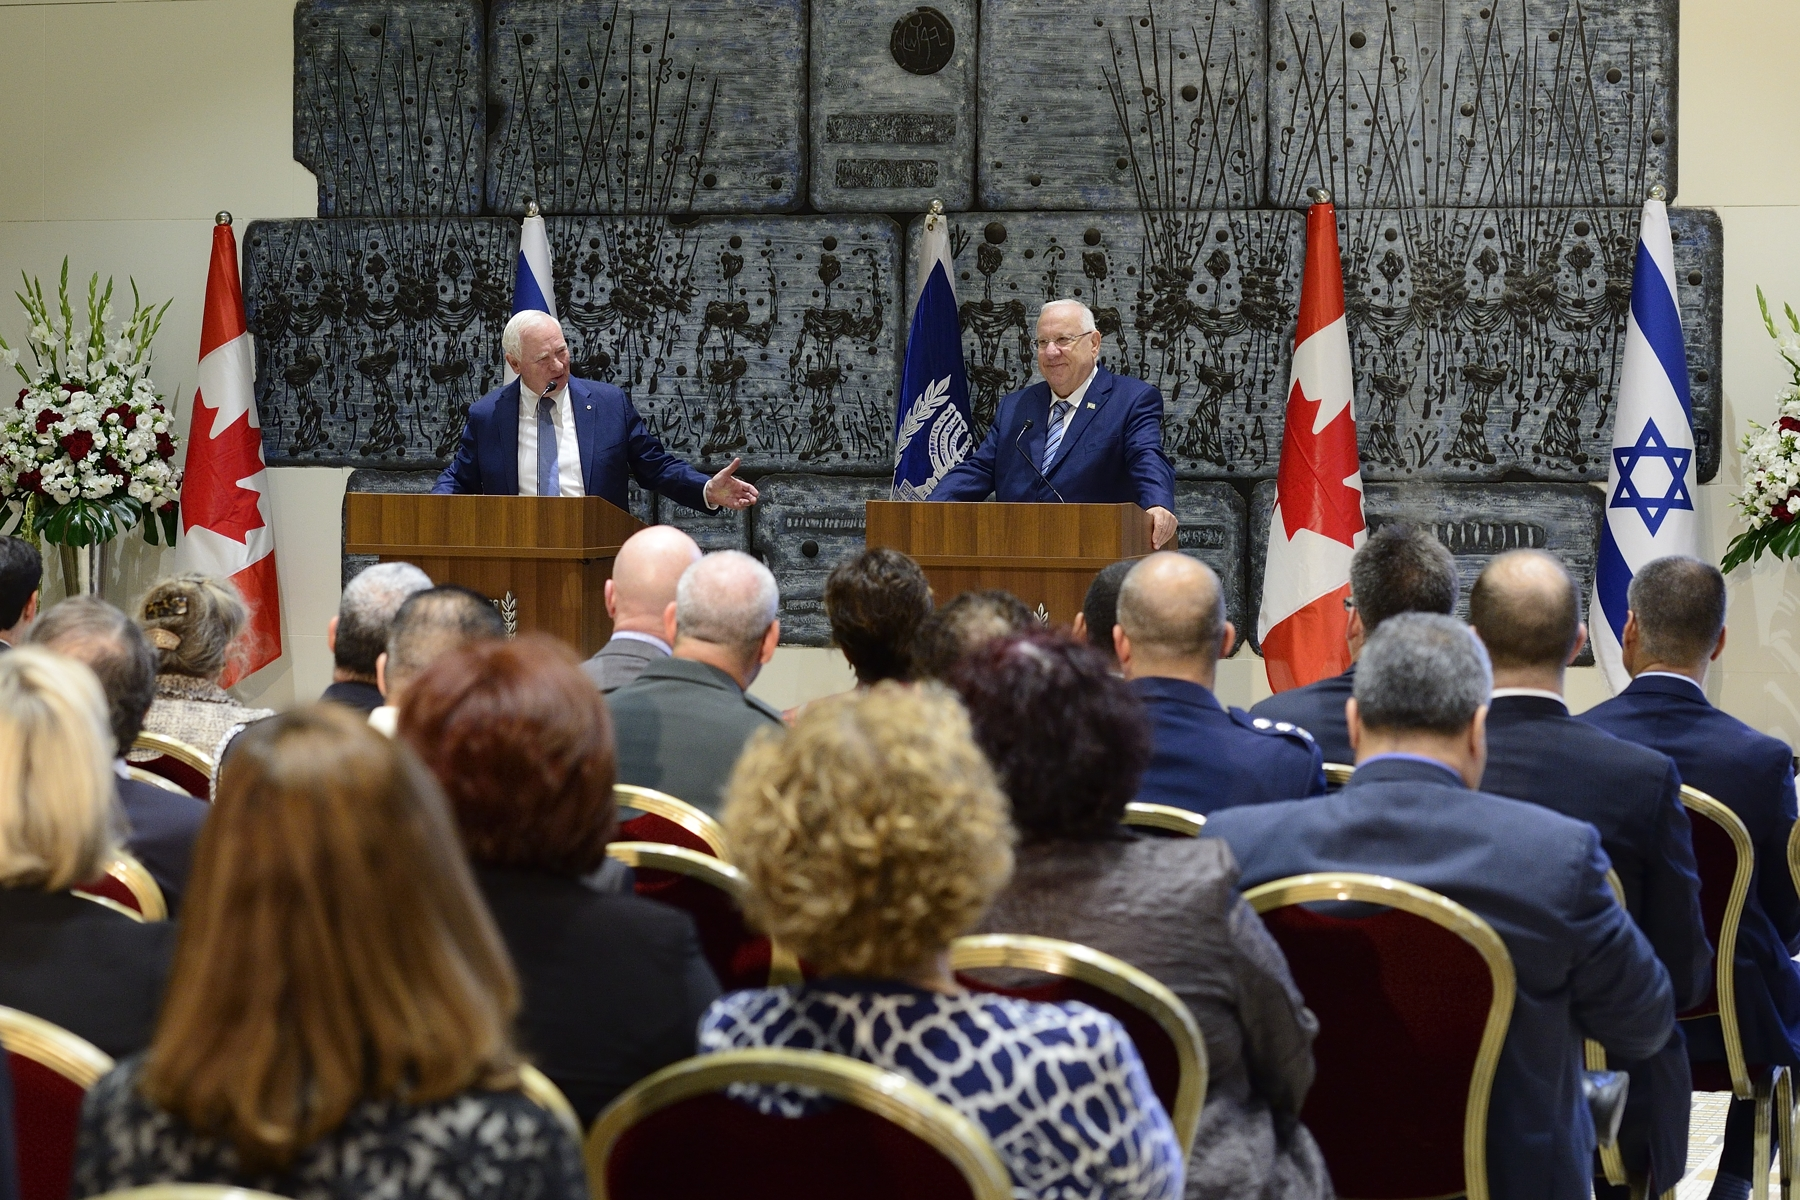 "Following the welcoming ceremony, the Governor General and the President delivered statements to members of the media.In a world of instant, digital communication, face-to-face visits like this are so important. The Canada-Israel relationship is exceptional. It has economic, cultural, scientific, political and strategic dimensions, all of which are grounded in our people-to-people ties,"" said the Governor General."